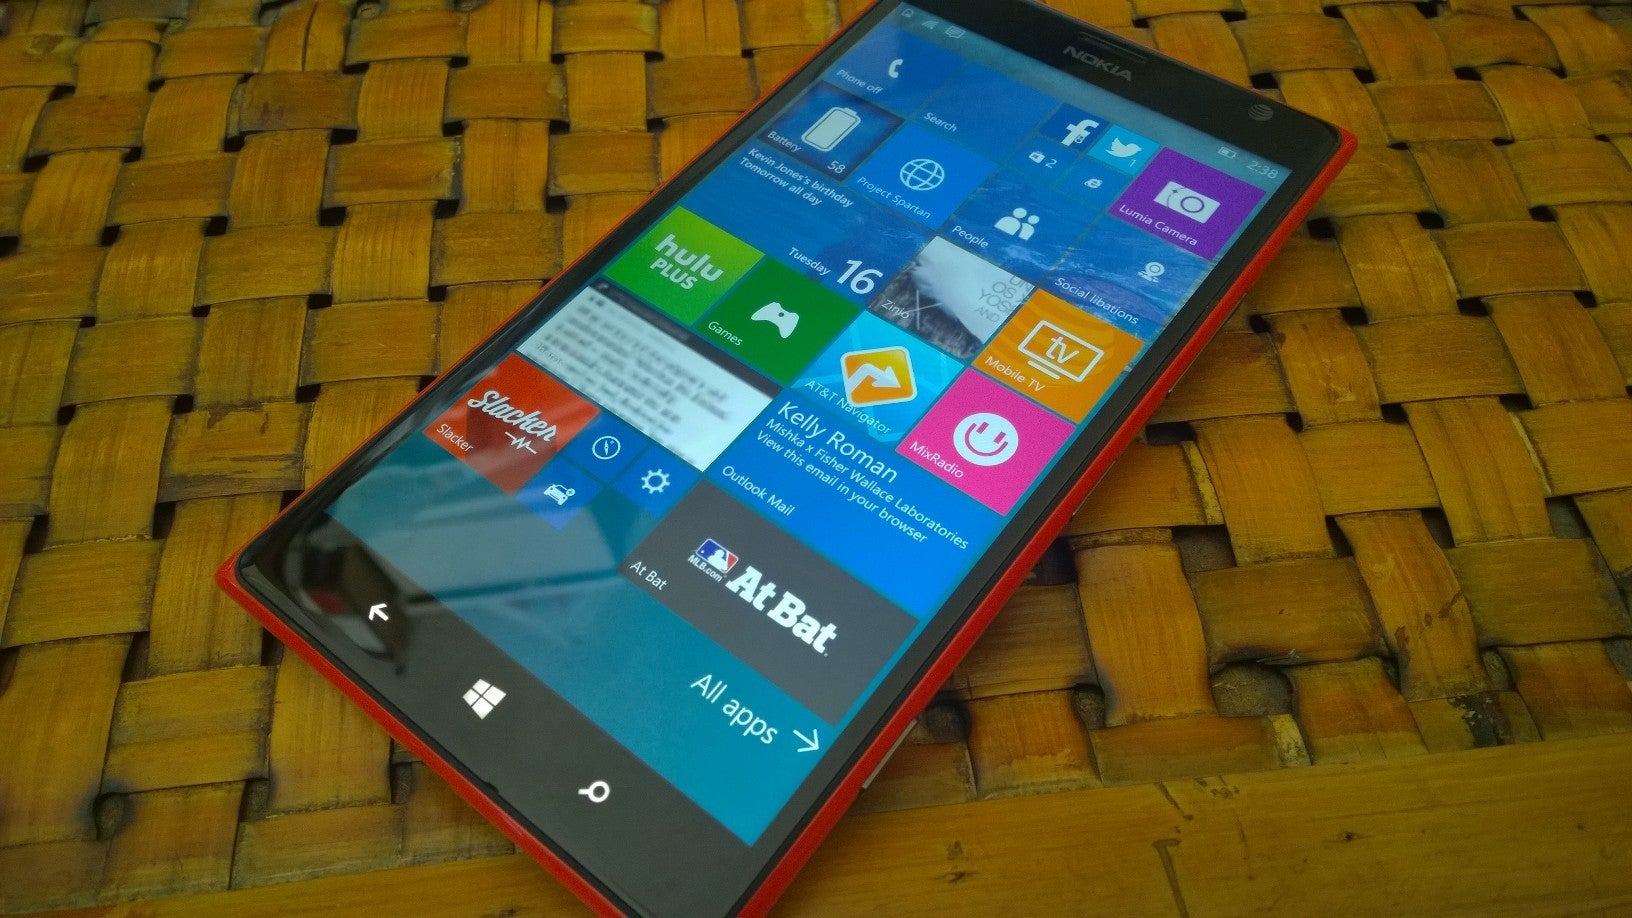 What to expect from your Windows 10 Mobile upgrade